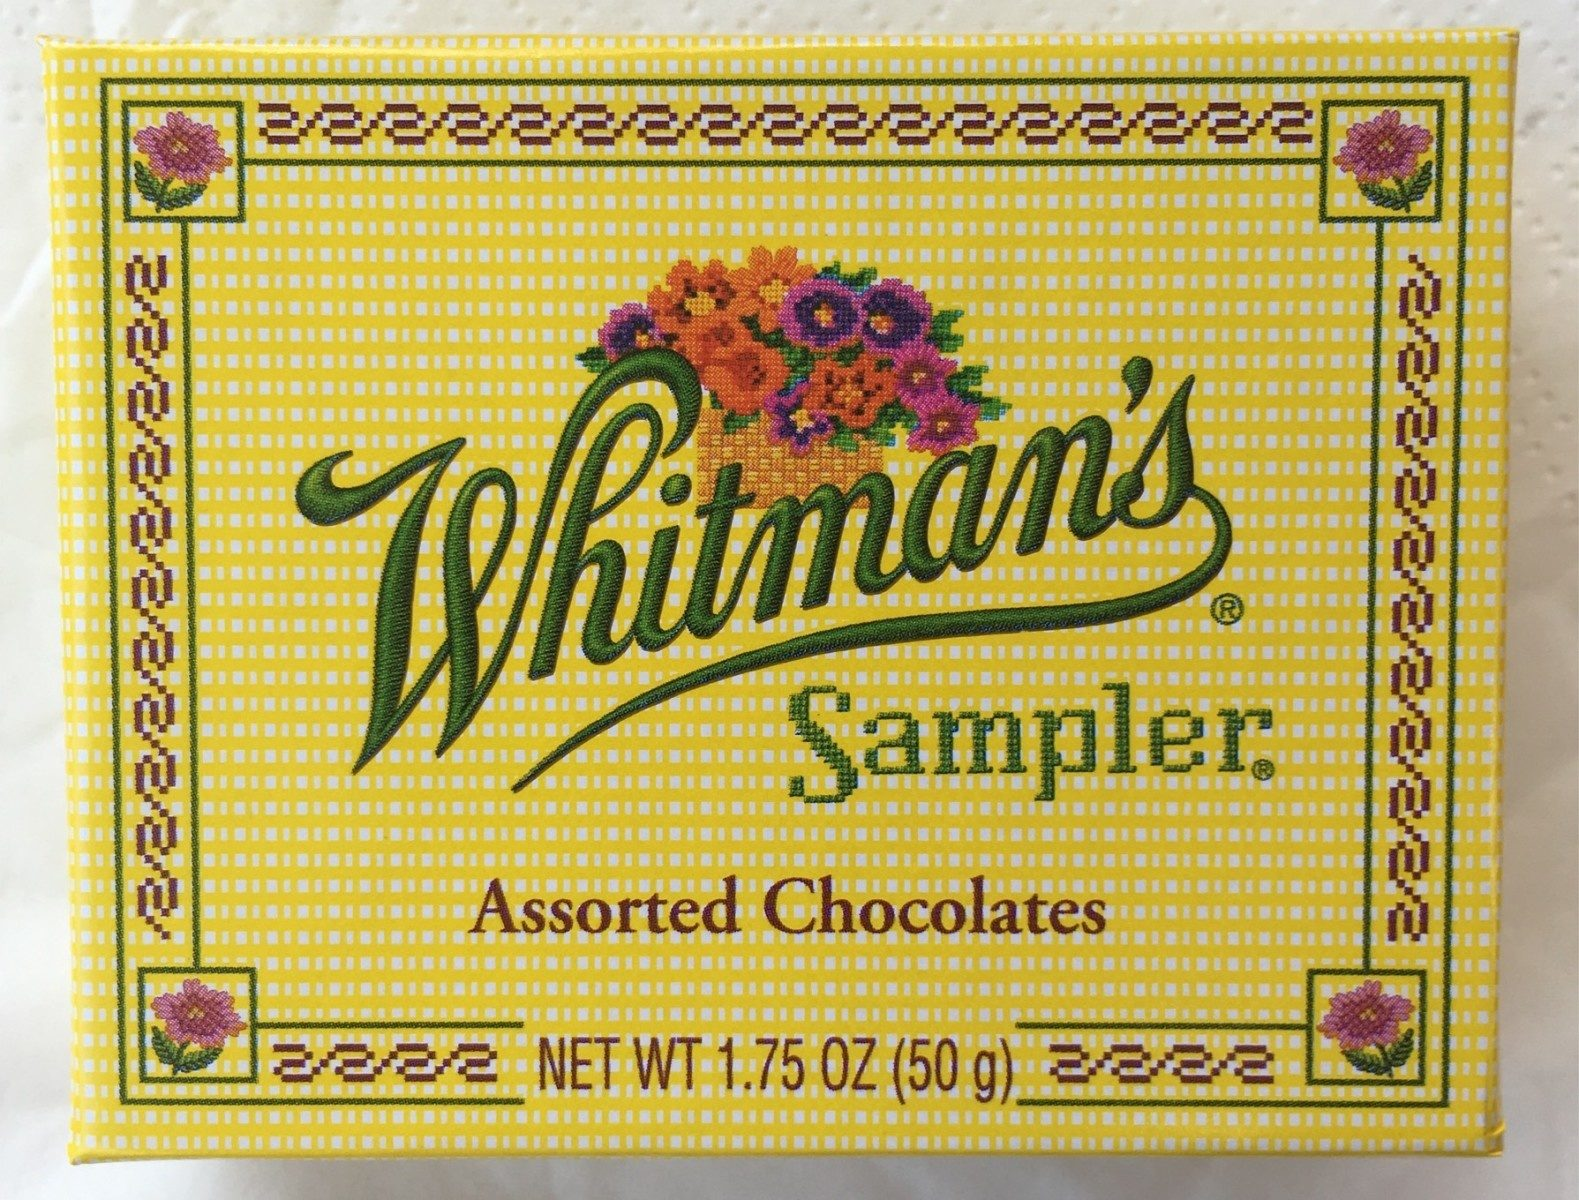 Assorted Chocolates - Product